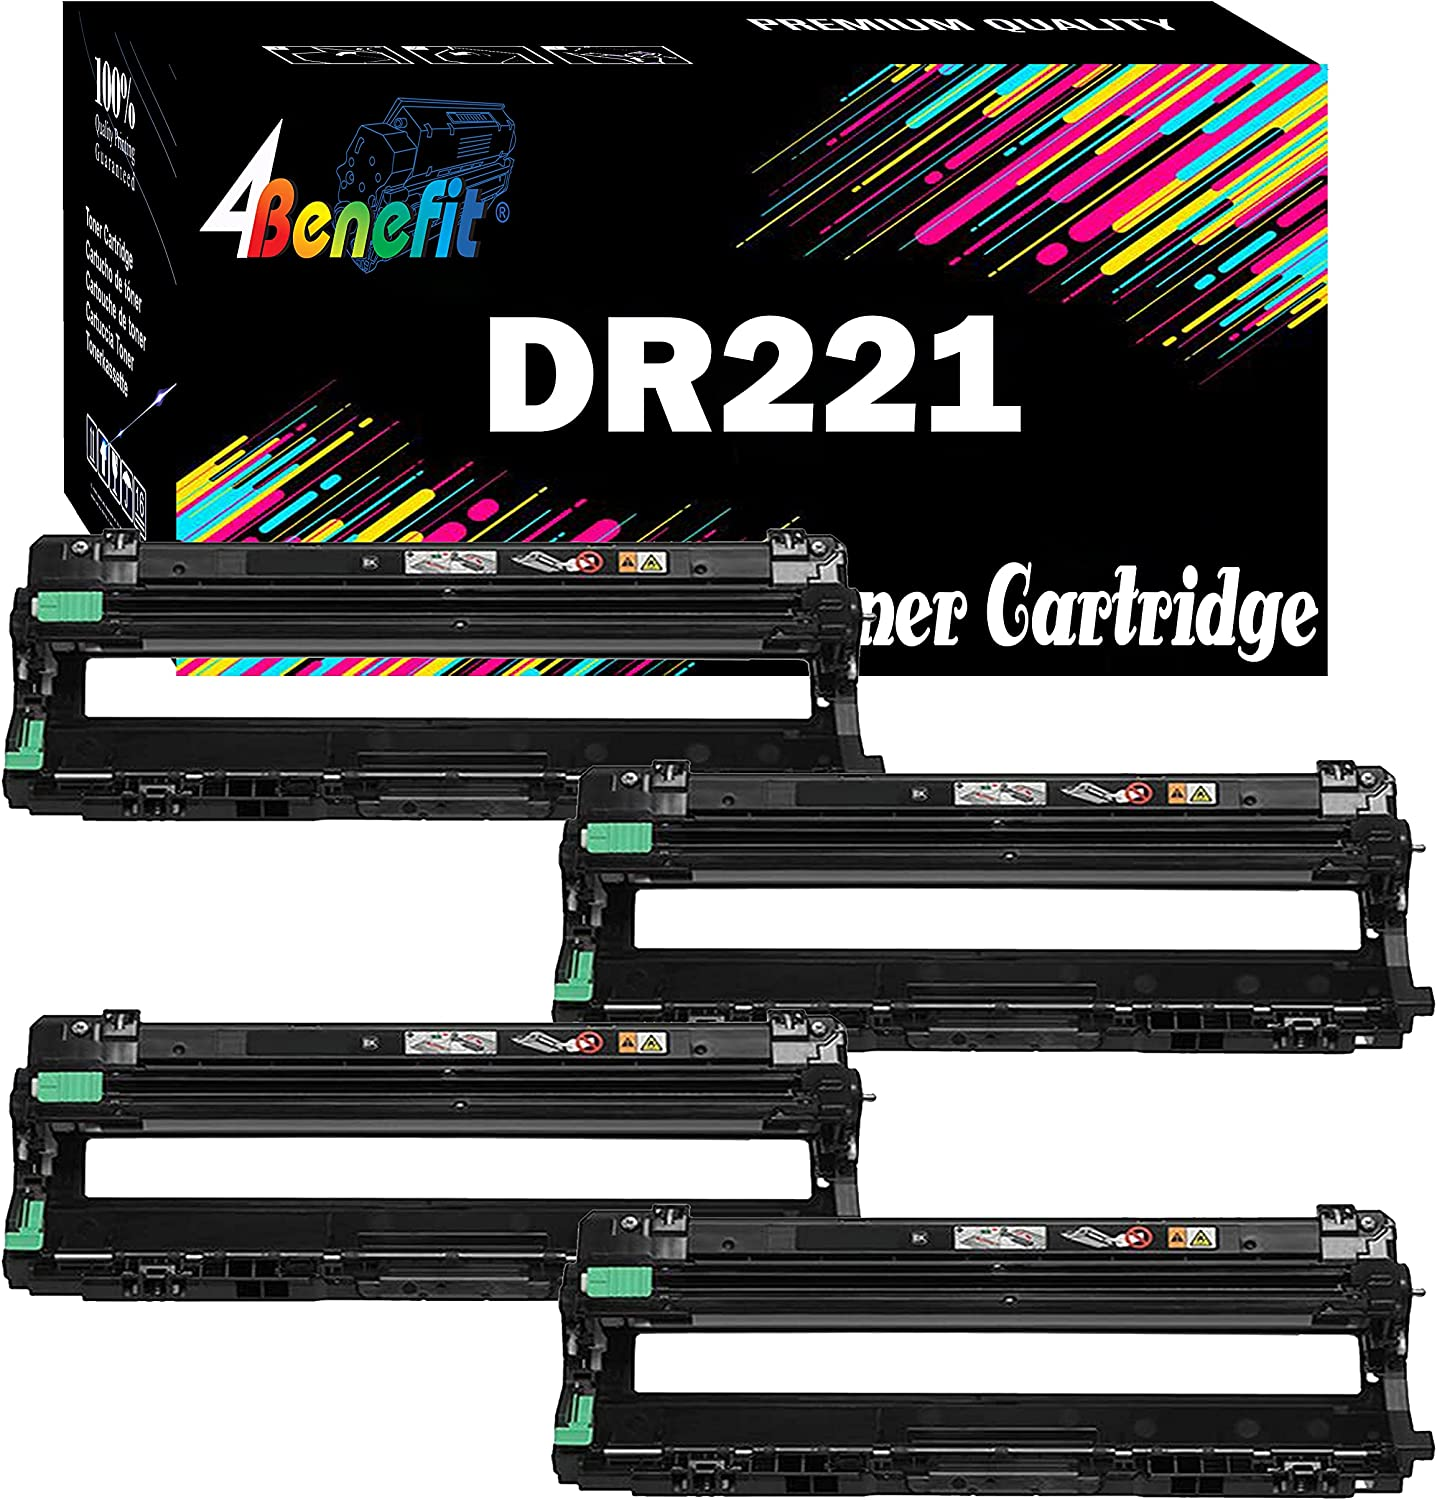 (4xDrum) 4Benefit Compatible DR221CL Drum DR221 DR 221 4 Pack Used for TN221/TN225 4 Colors for HL-3140CW HL-3150CDN MFC-9130CW MFC-9340CDW Printer